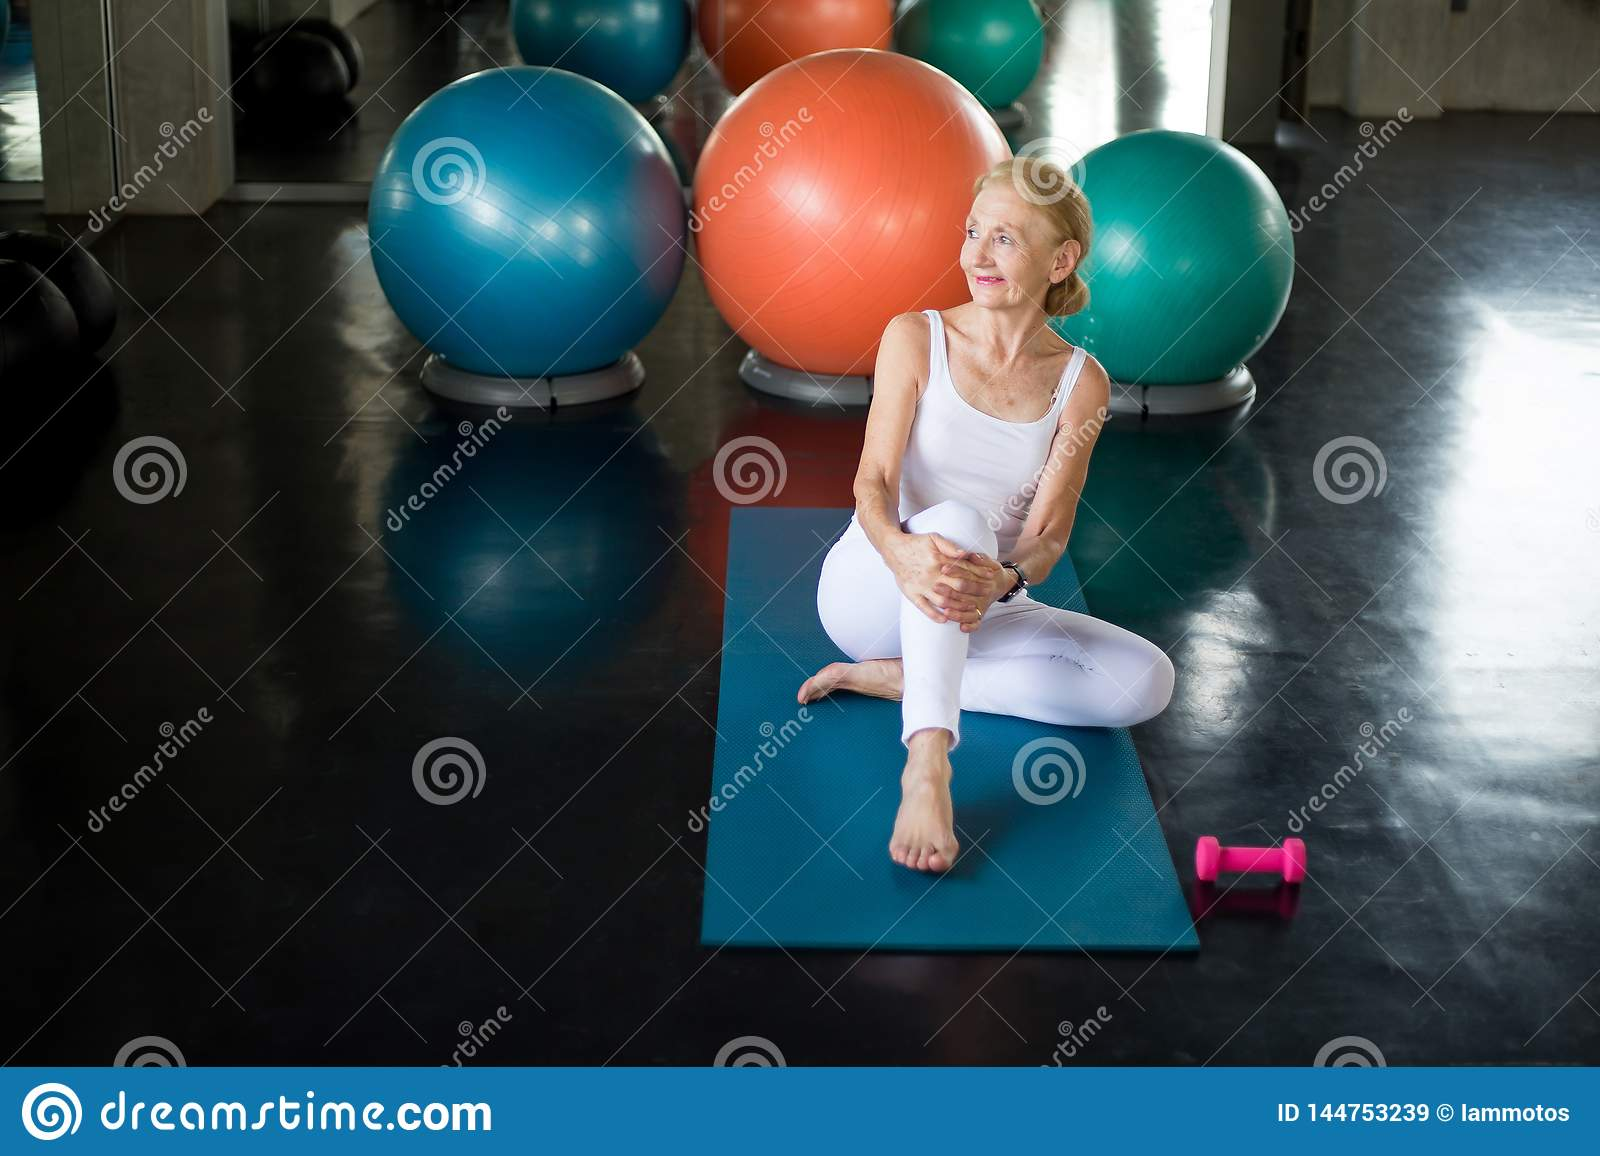 Senior woman Doing yoga in fitness gym. aged lady exercising. Old female taking a break from workout .Mature sport training.